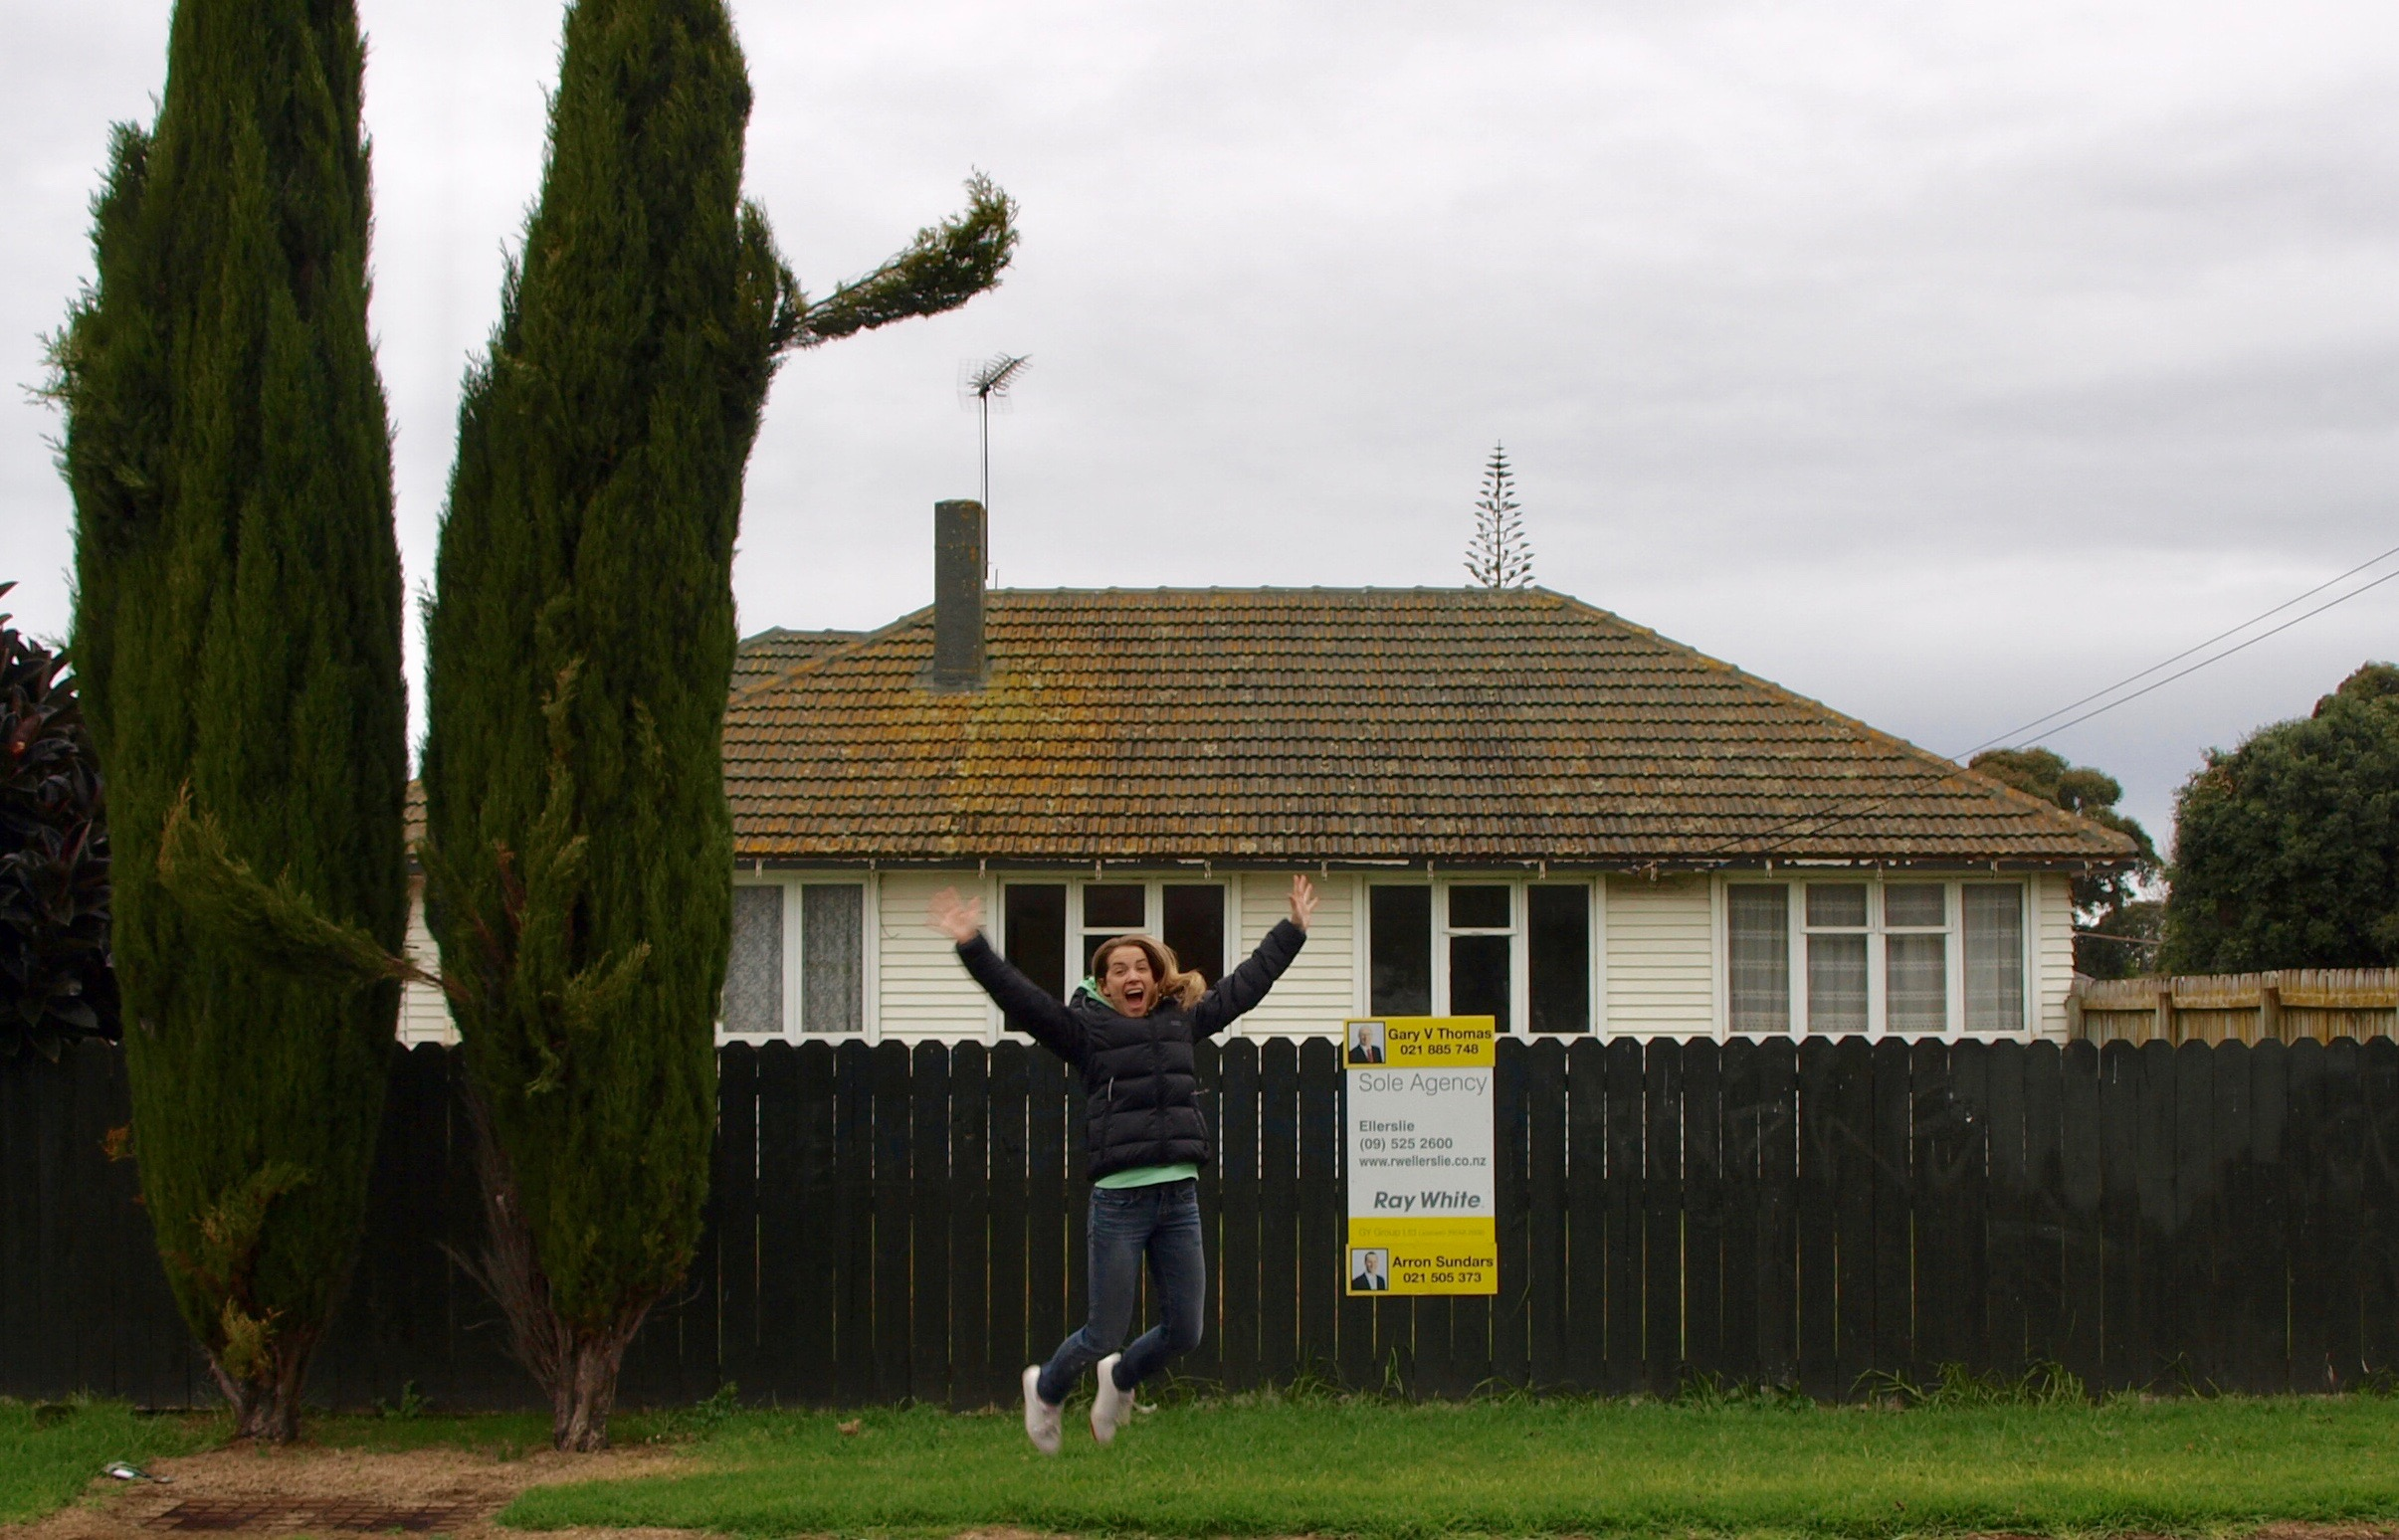 Our First House we purchased in 2010